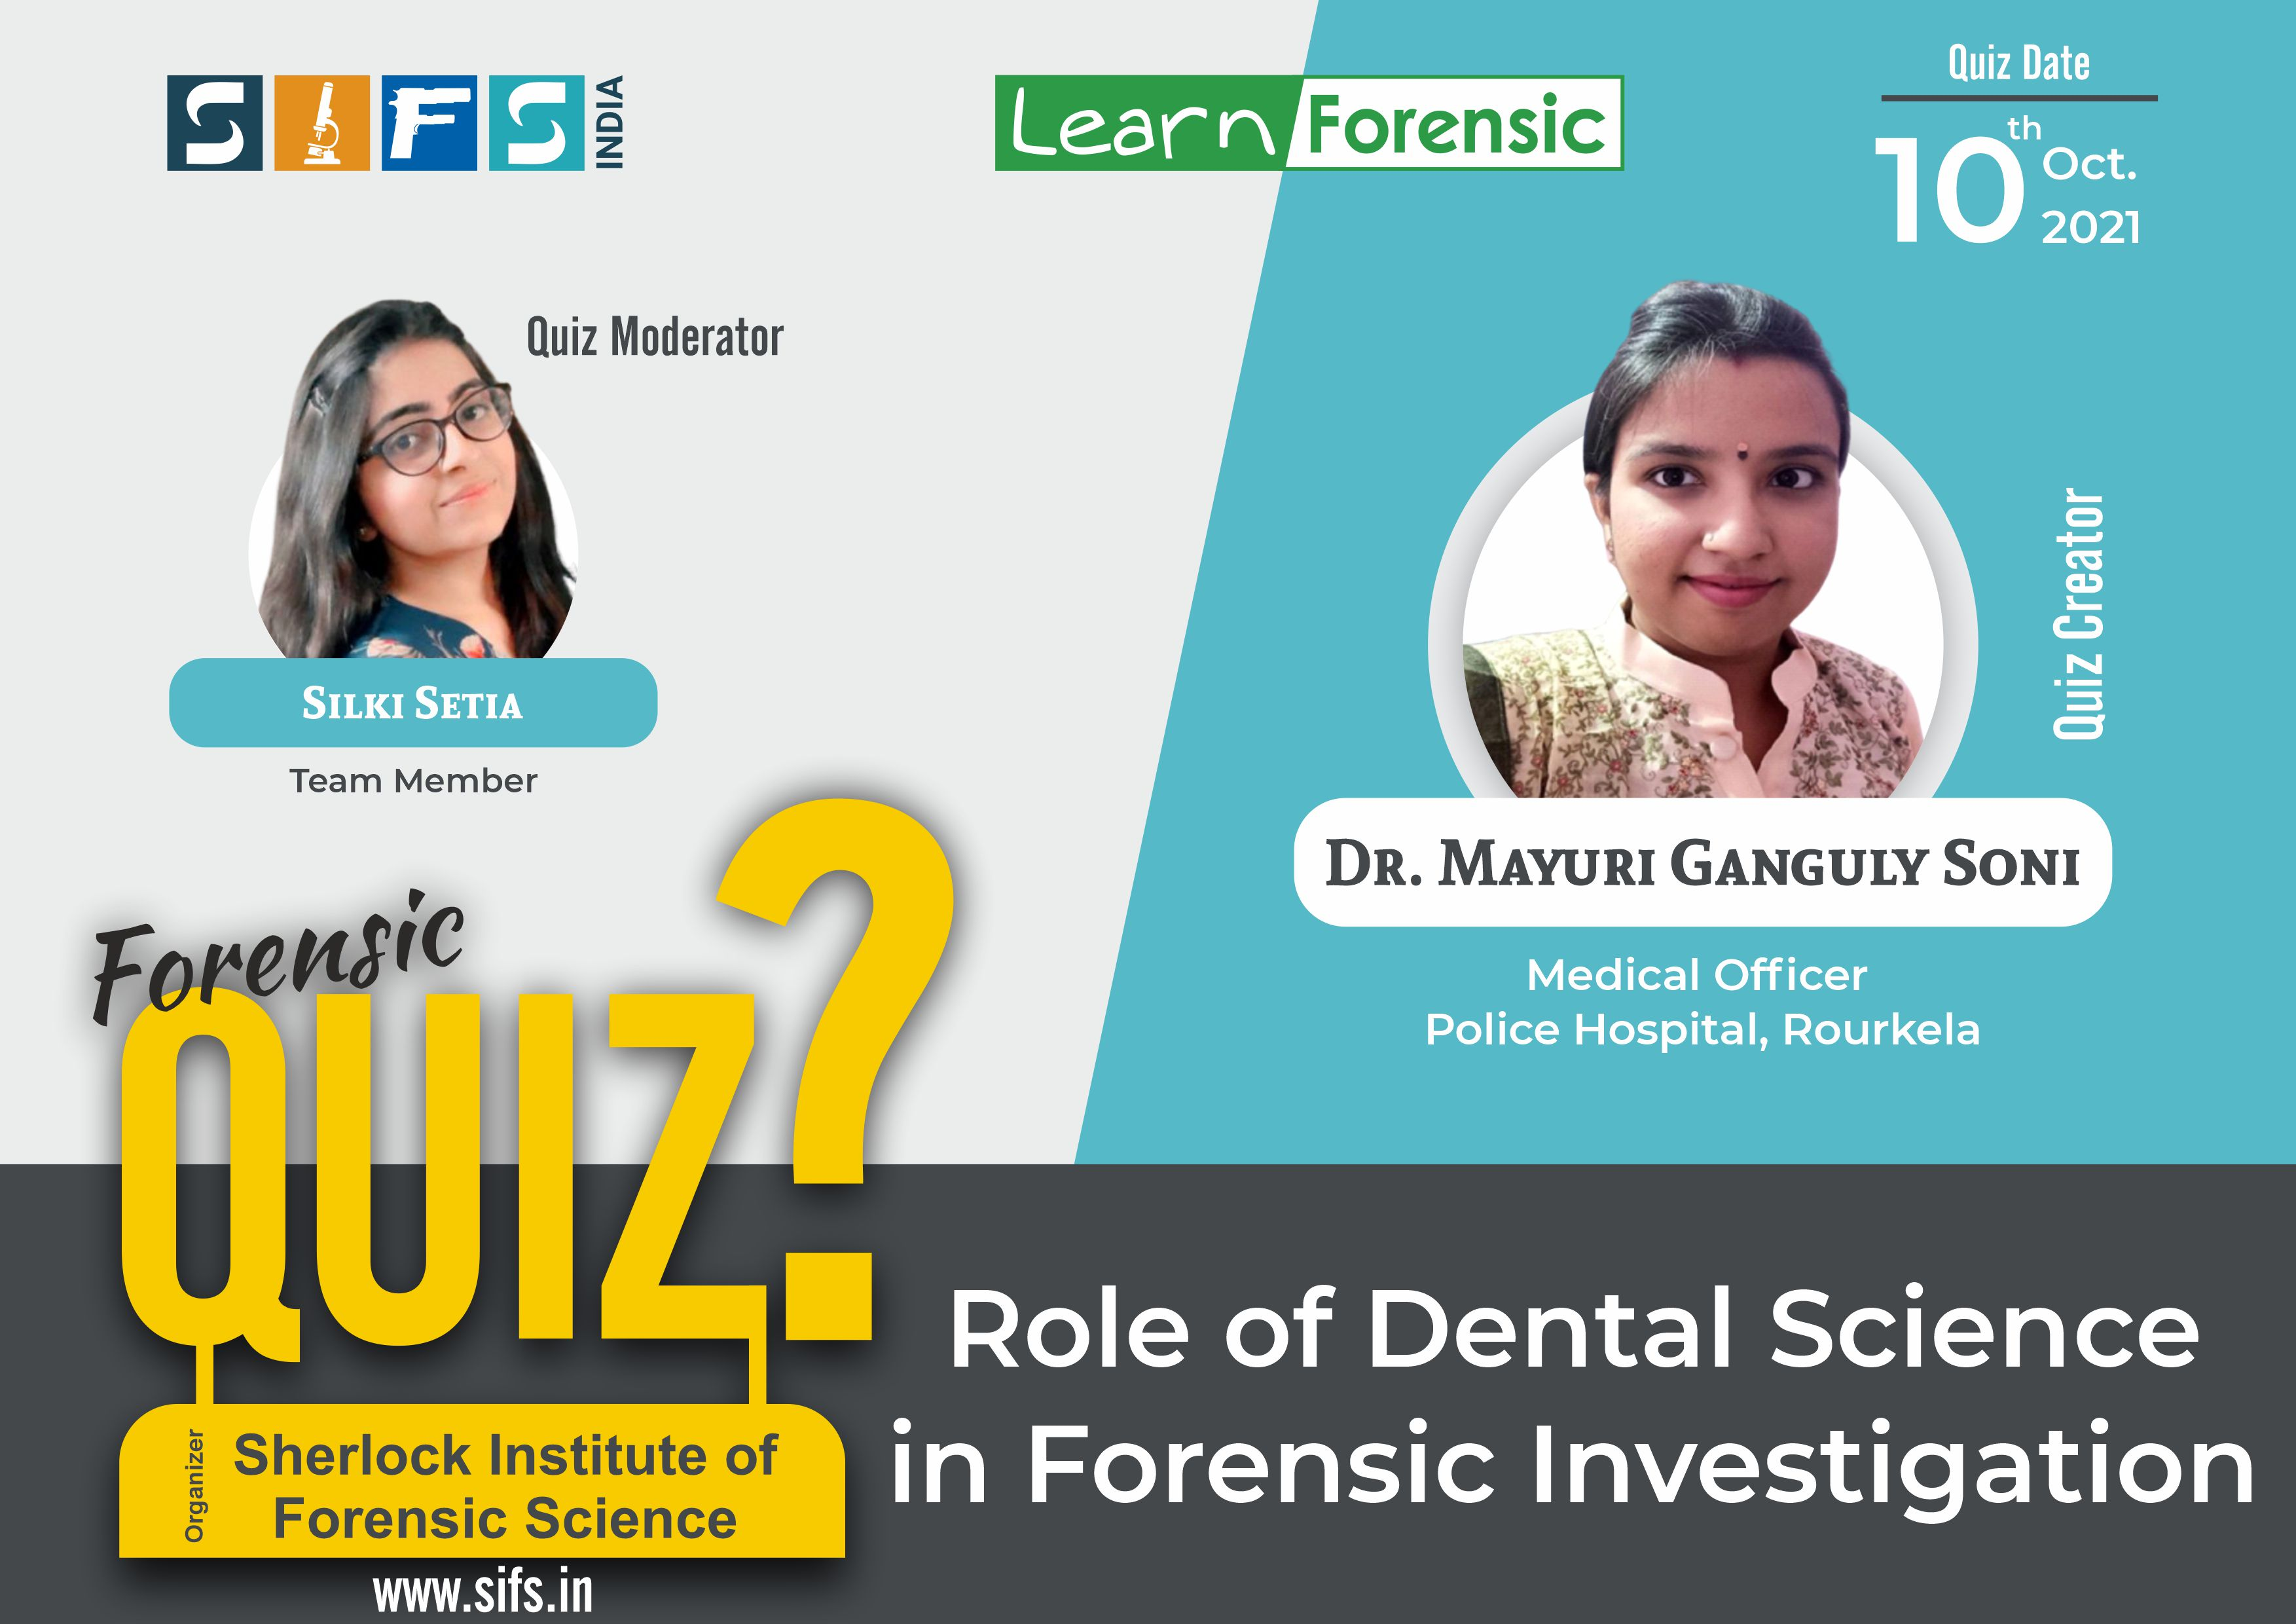 Role of Dental Science in Forensic Investigation